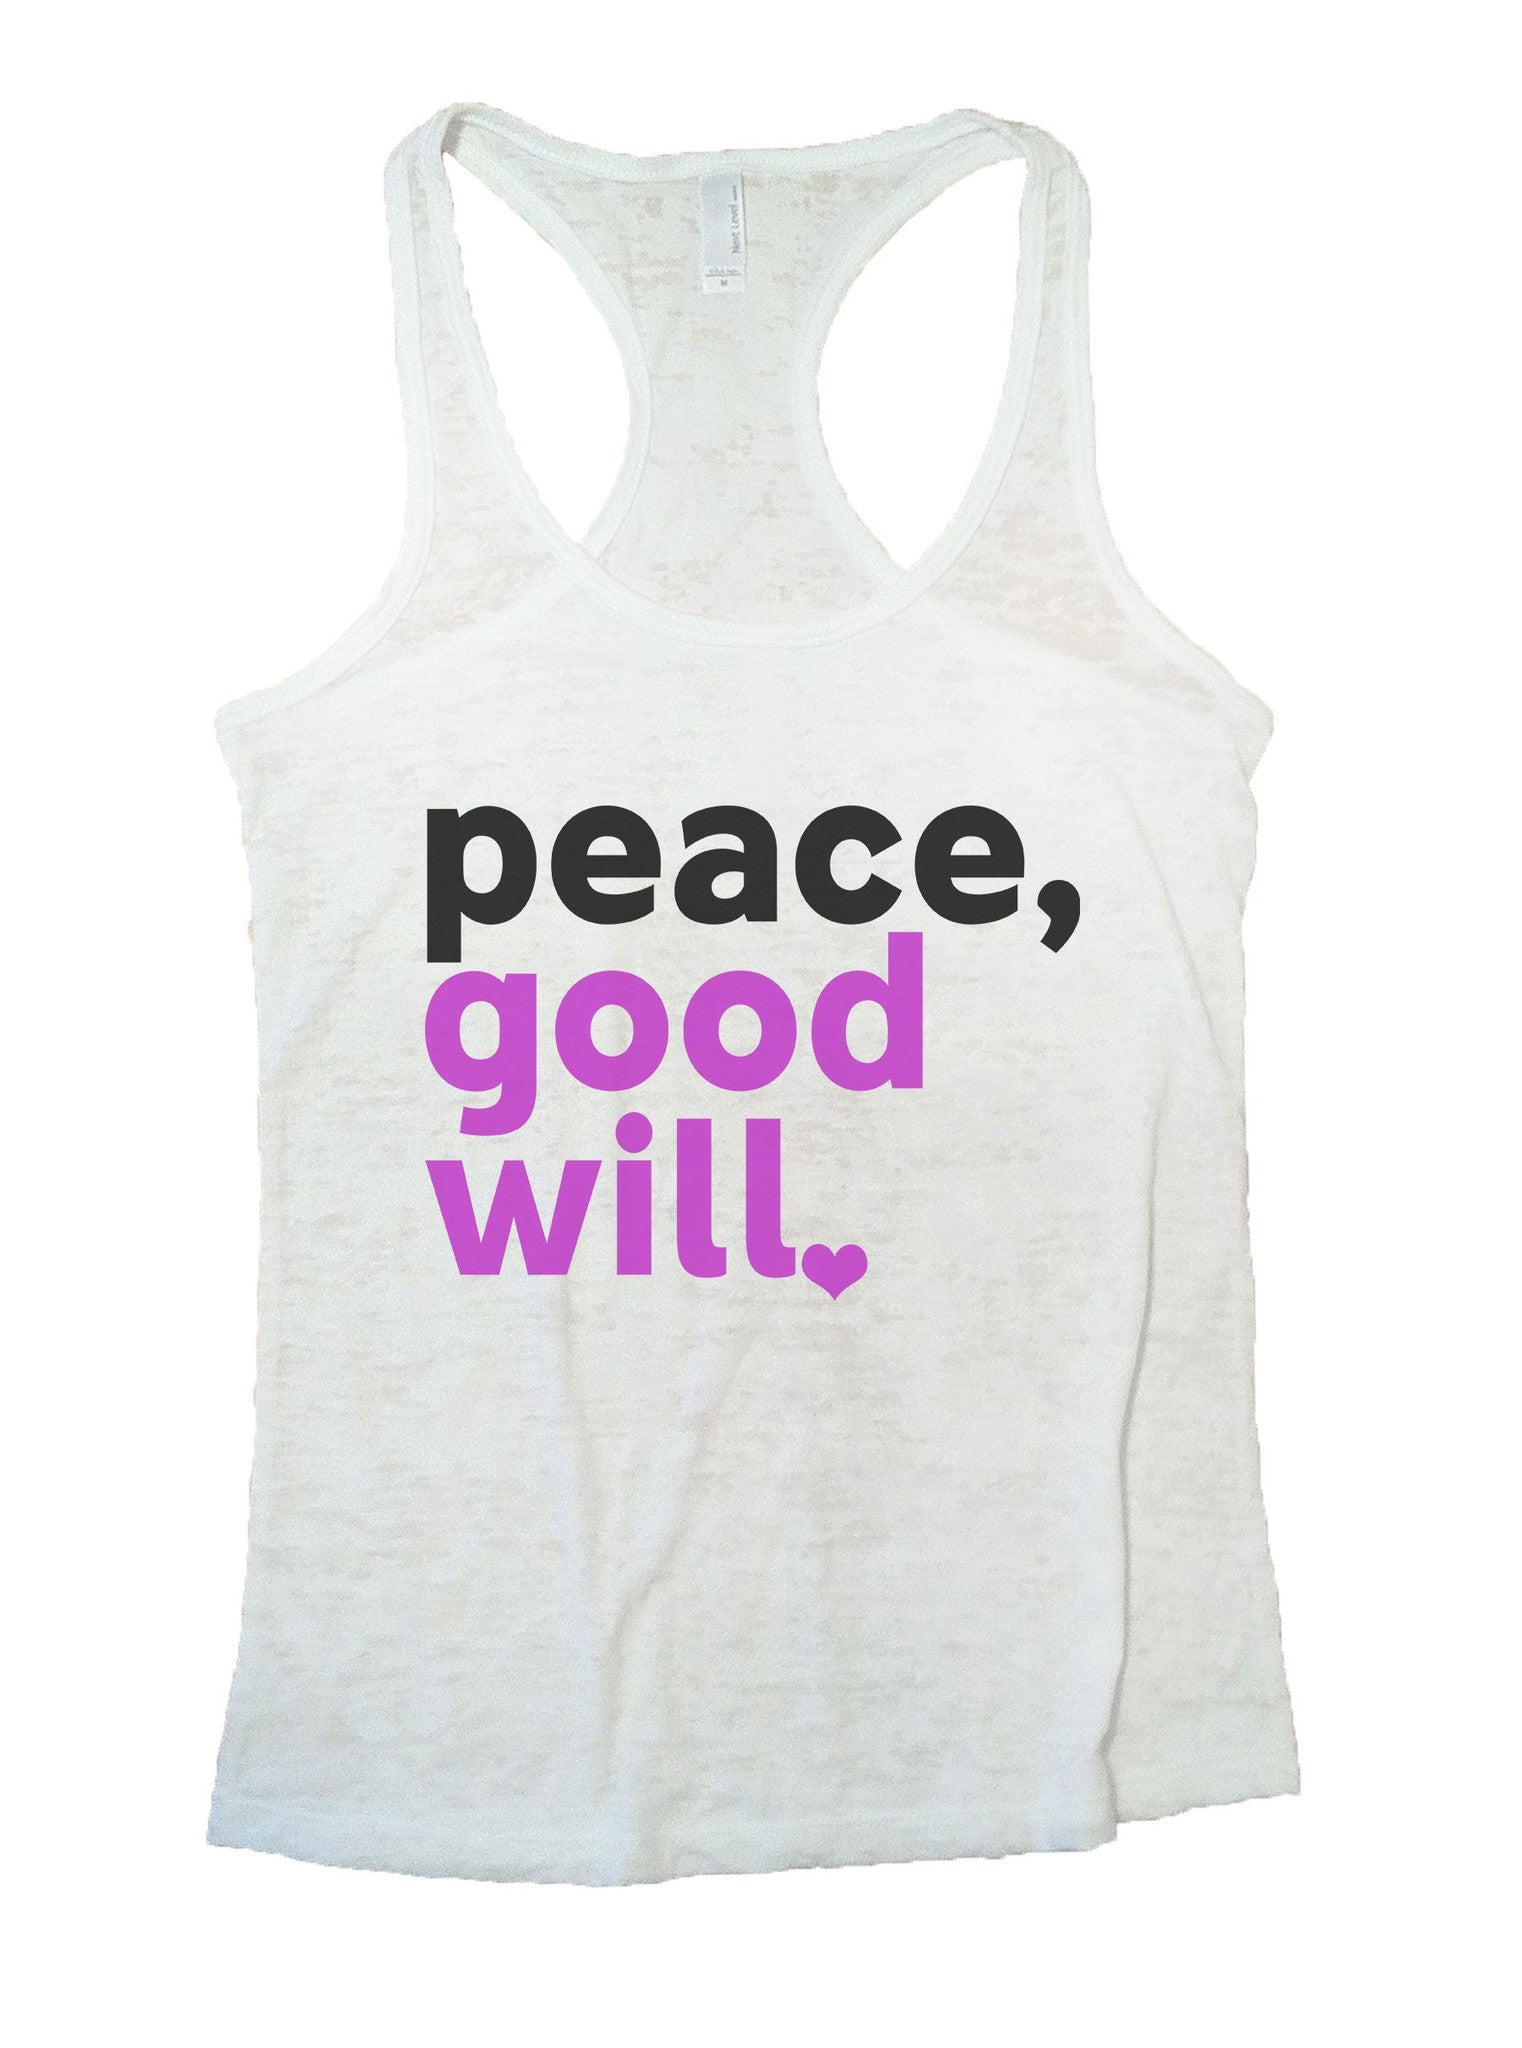 Peace, Good Will Burnout Tank Top By BurnoutTankTops.com - 1078 - Funny Shirts Tank Tops Burnouts and Triblends  - 6